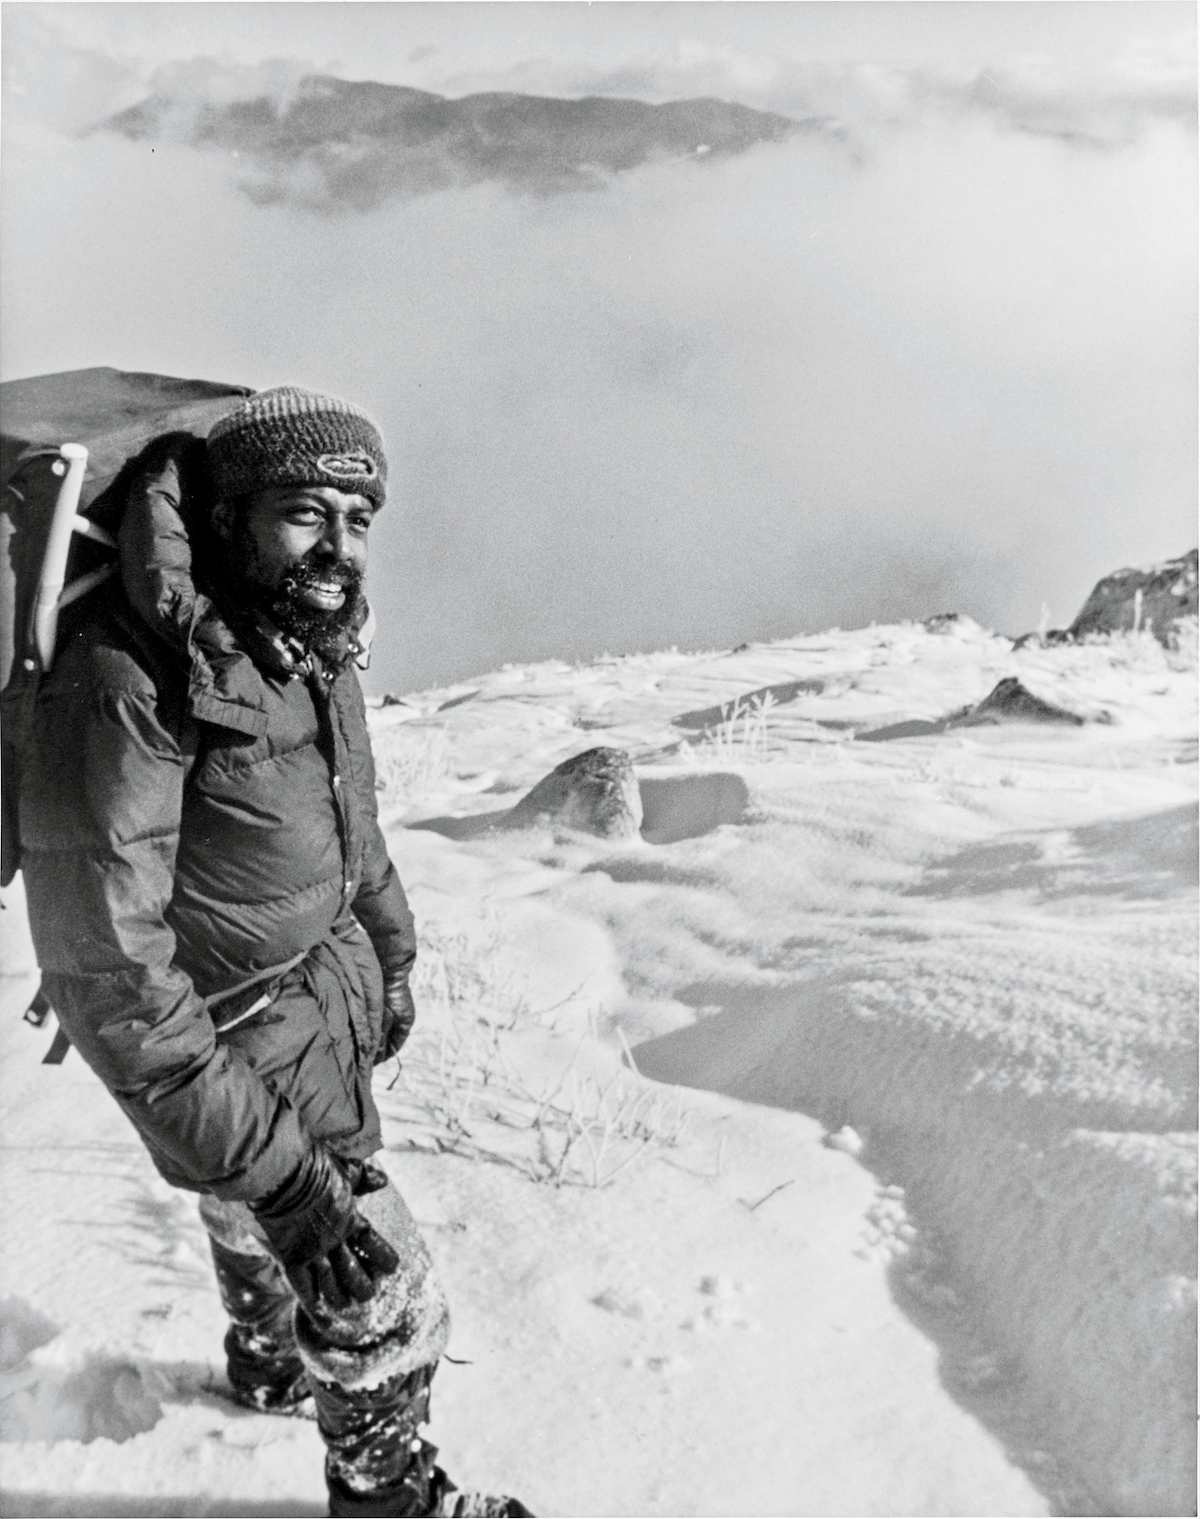 Ed Roberson on Mt. Washington (Agiocochook), New Hampshire, date unknown. [Photo] Courtesy Frank Daugherty